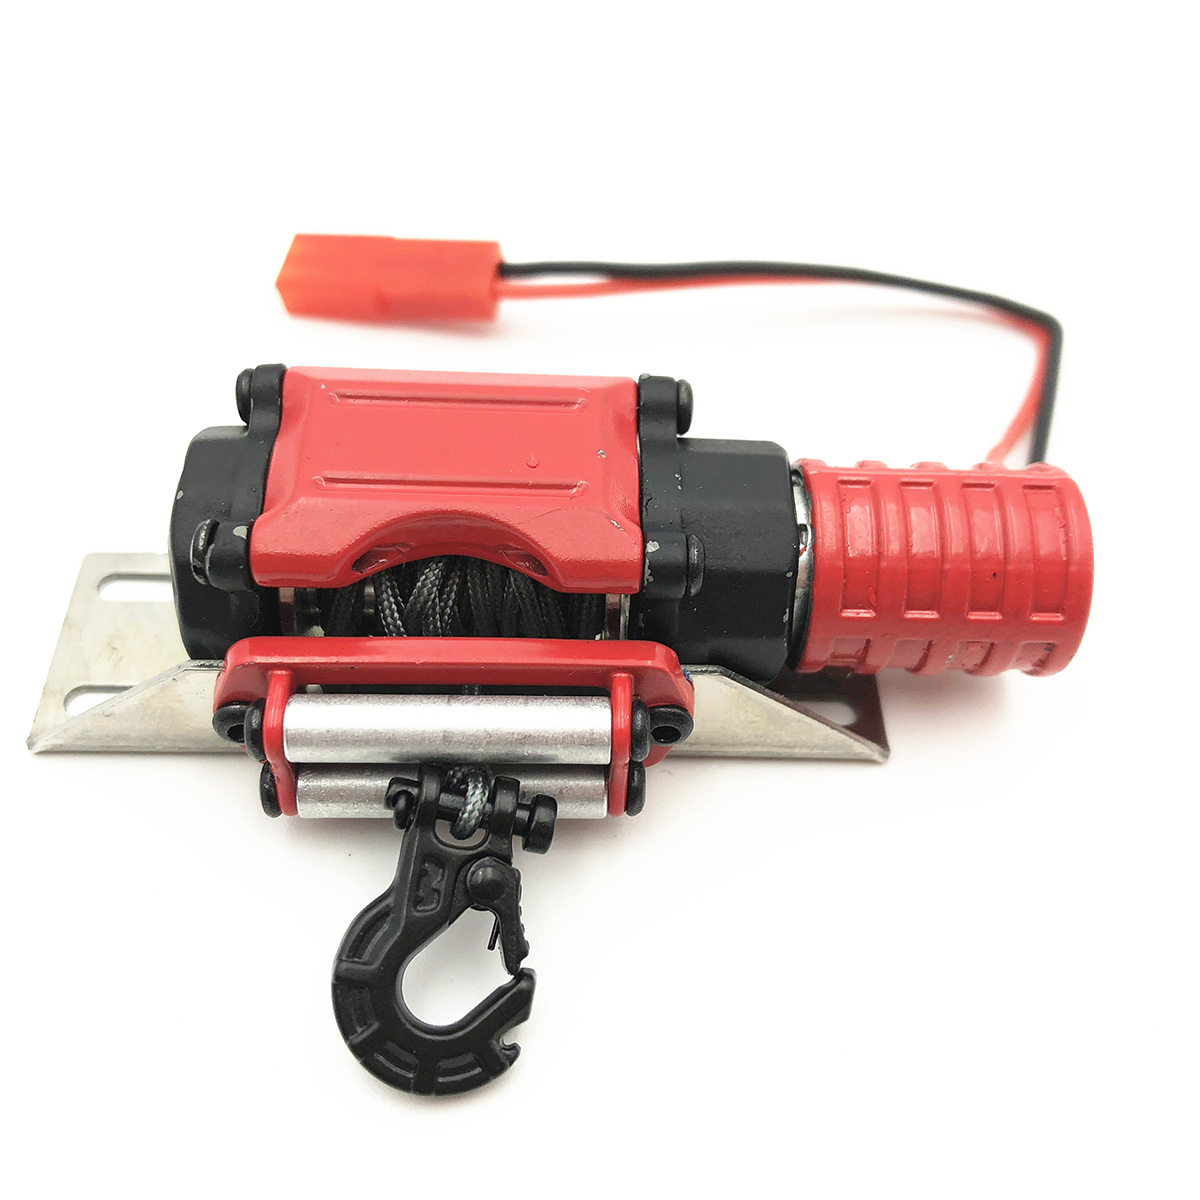 Electric Capstan Metal Winch Traction for 1/10 RC CAR SCX10 D90 D110 TF2 TRX4 KM2 Red with black hook